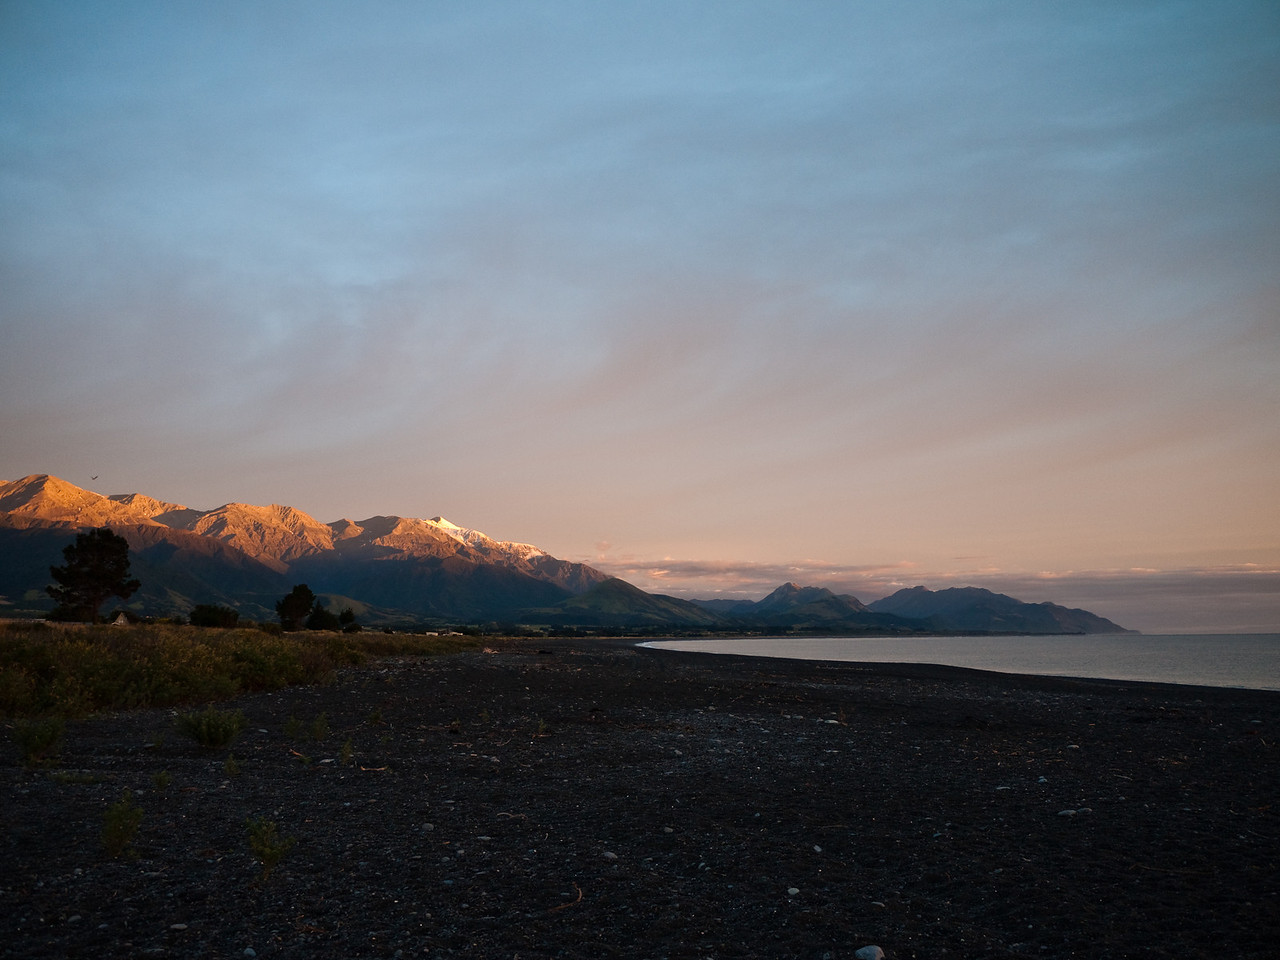 Sunlight descends on a snow-capped mountain peak on the coast at Kaikoura